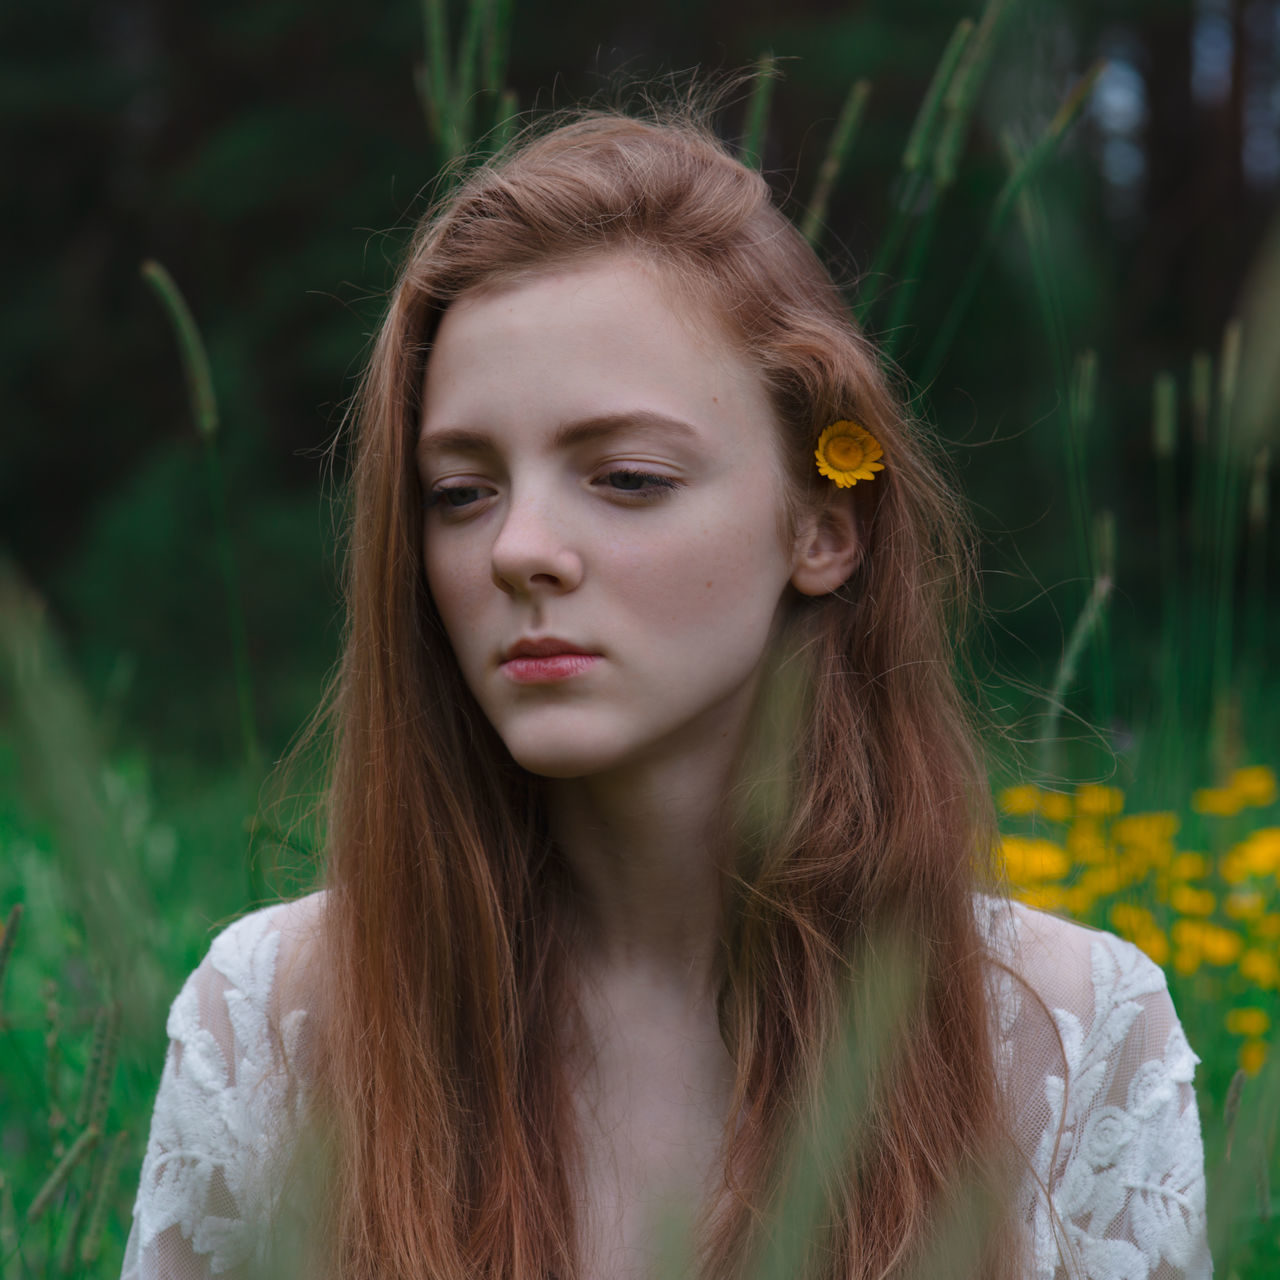 https://www.instagram.com/eglelaurinavice/ Beautiful Woman Close-up Day Face Field Flower Flowers Focus On Foreground Forest Front View Green Long Hair Nature One Person Outdoors Portrait Real People Standing Yellow Young Adult Young Women